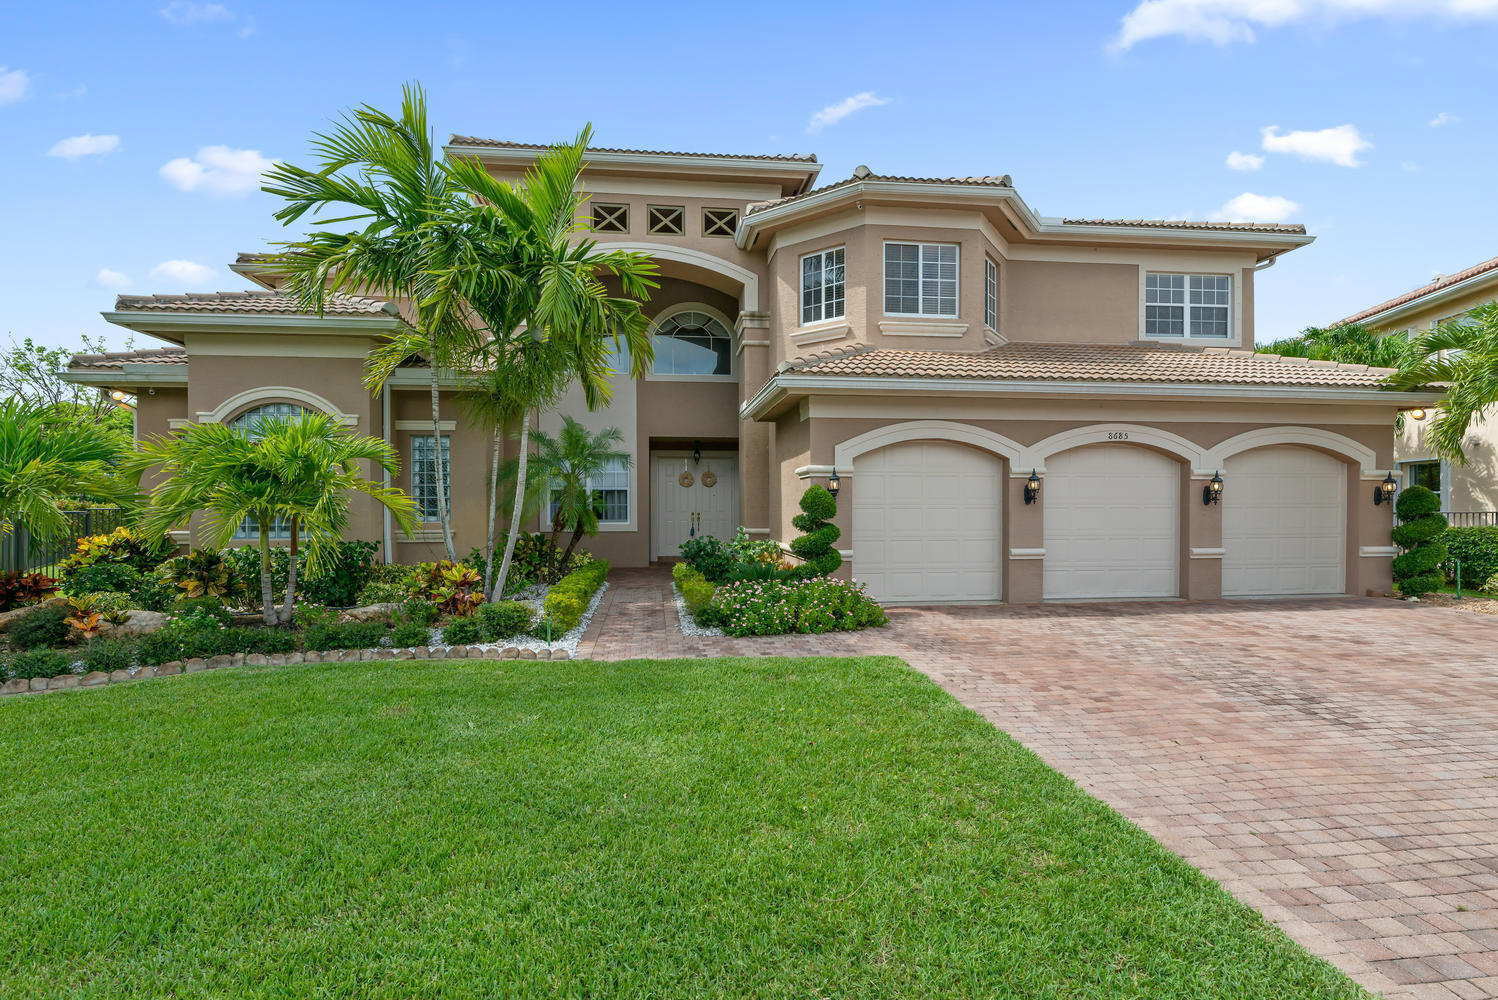 8685 Daystar Ridge Point  Boynton Beach, FL 33473